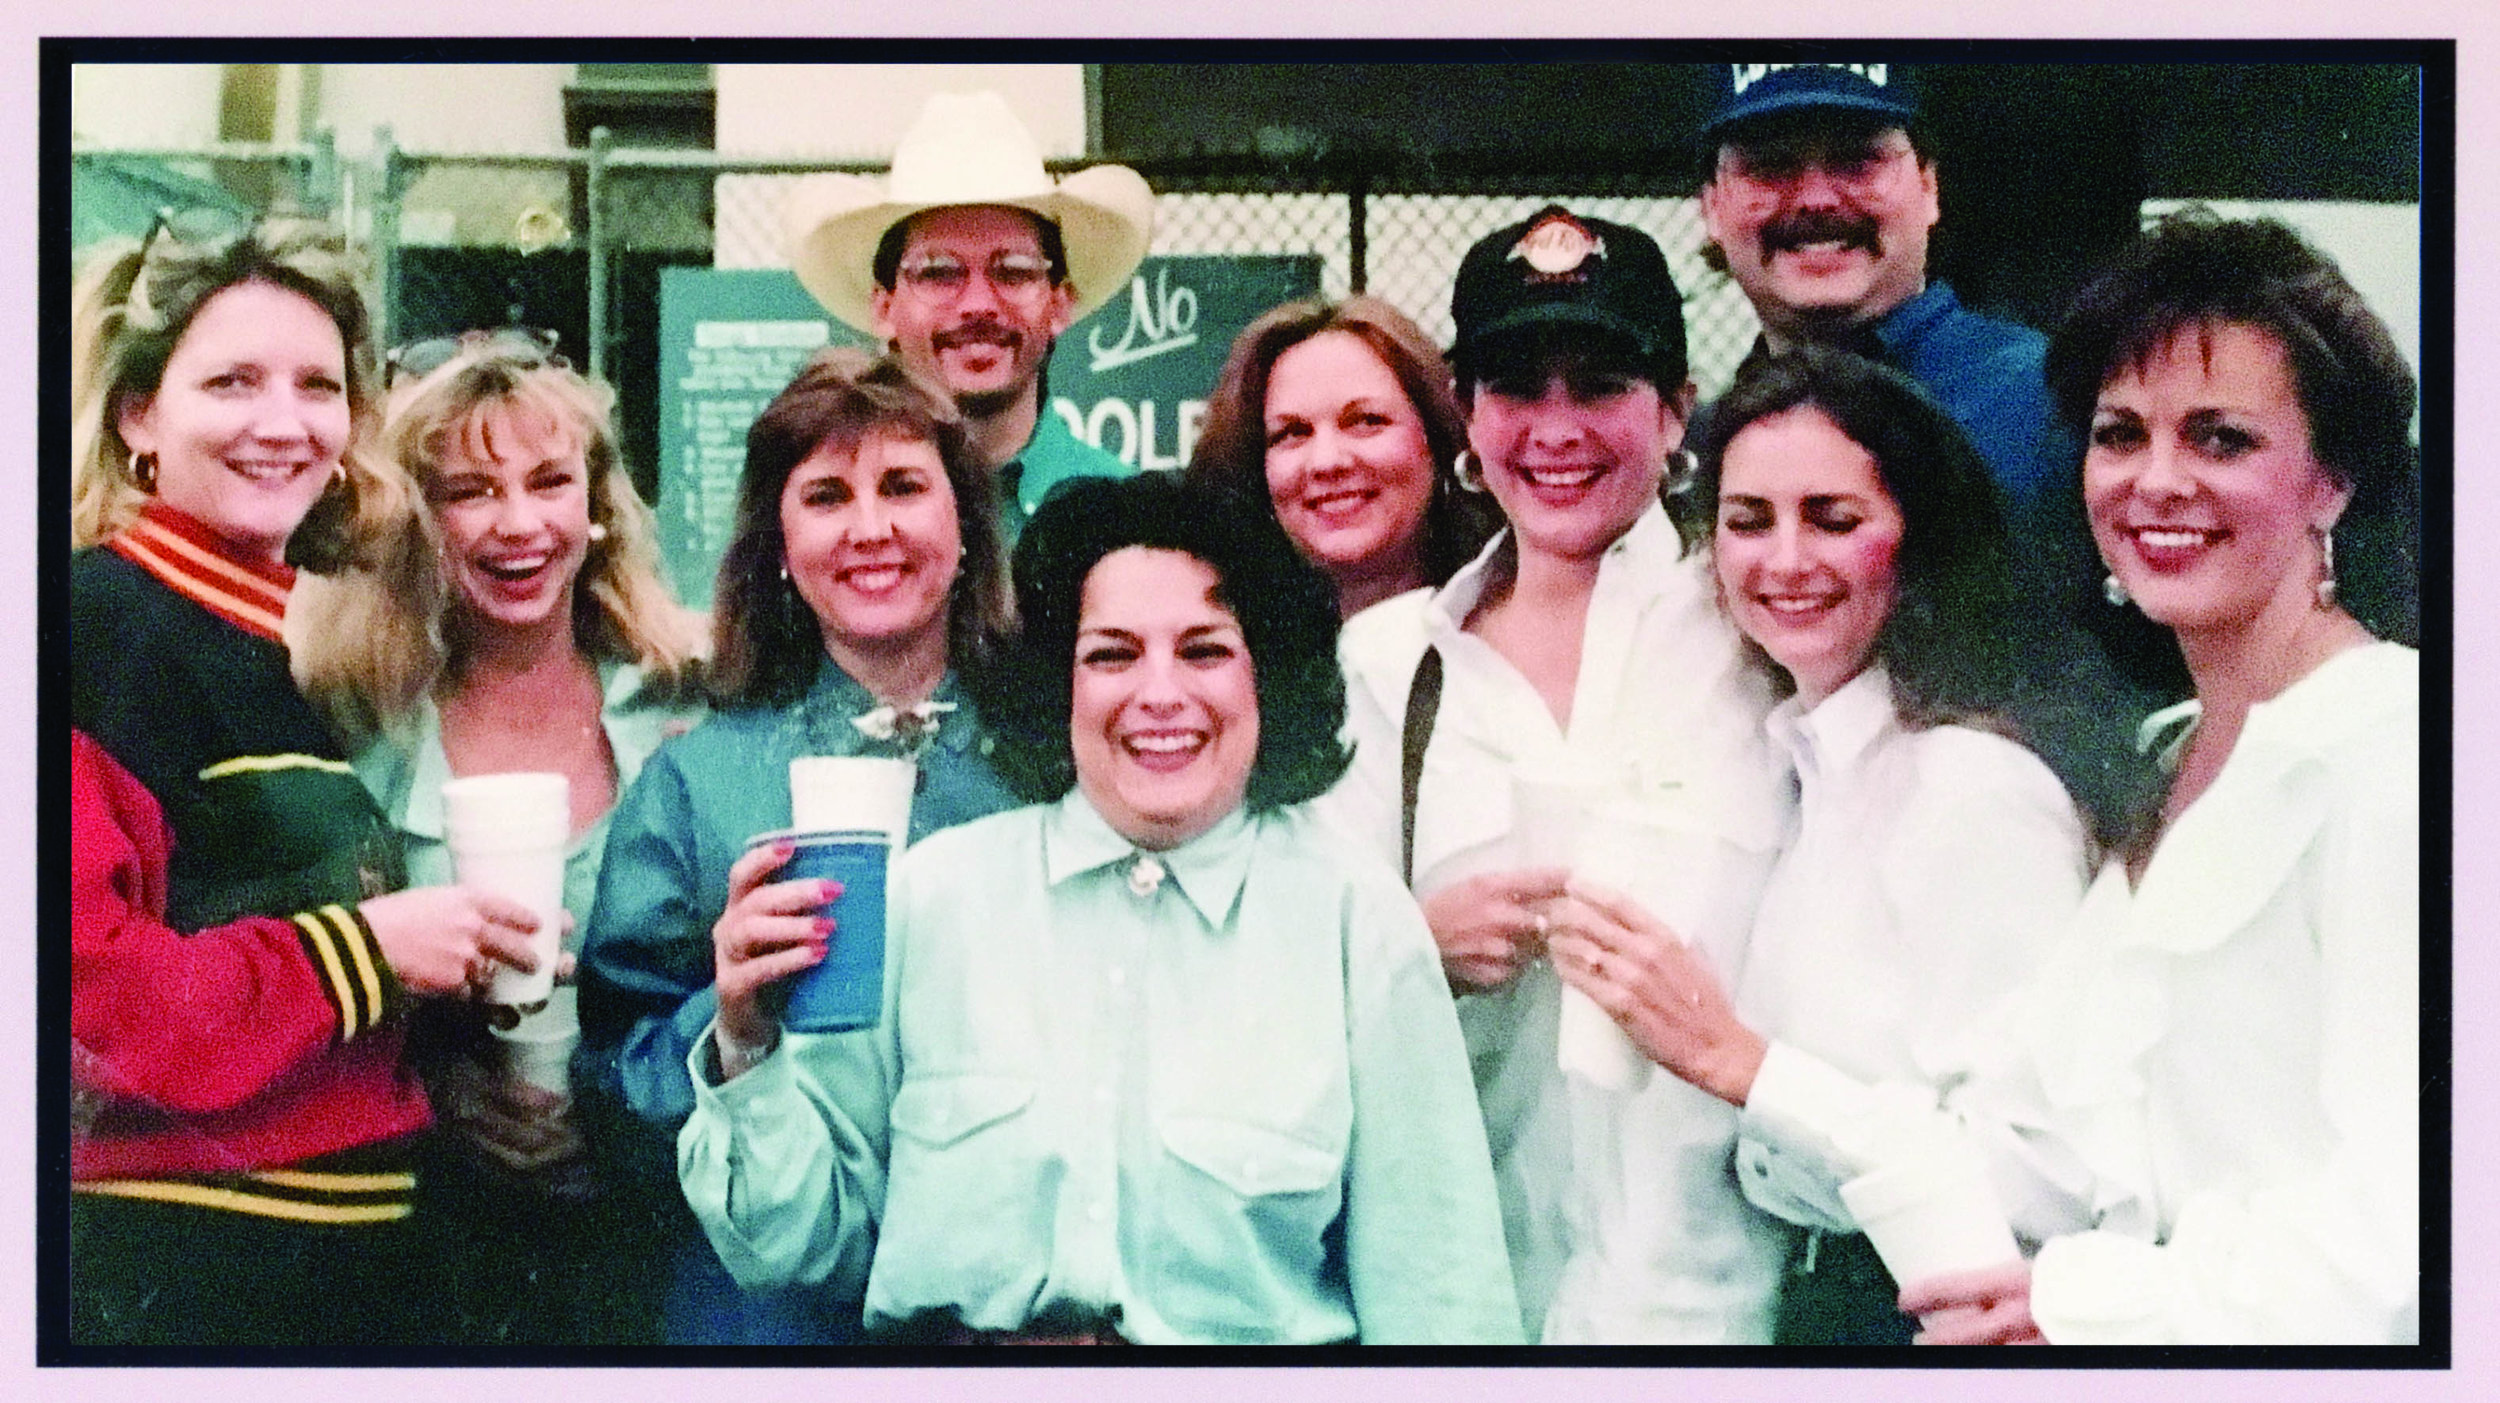 In 1998, many of the Bunco group members and their spouses attended a Texas Rangers baseball game.